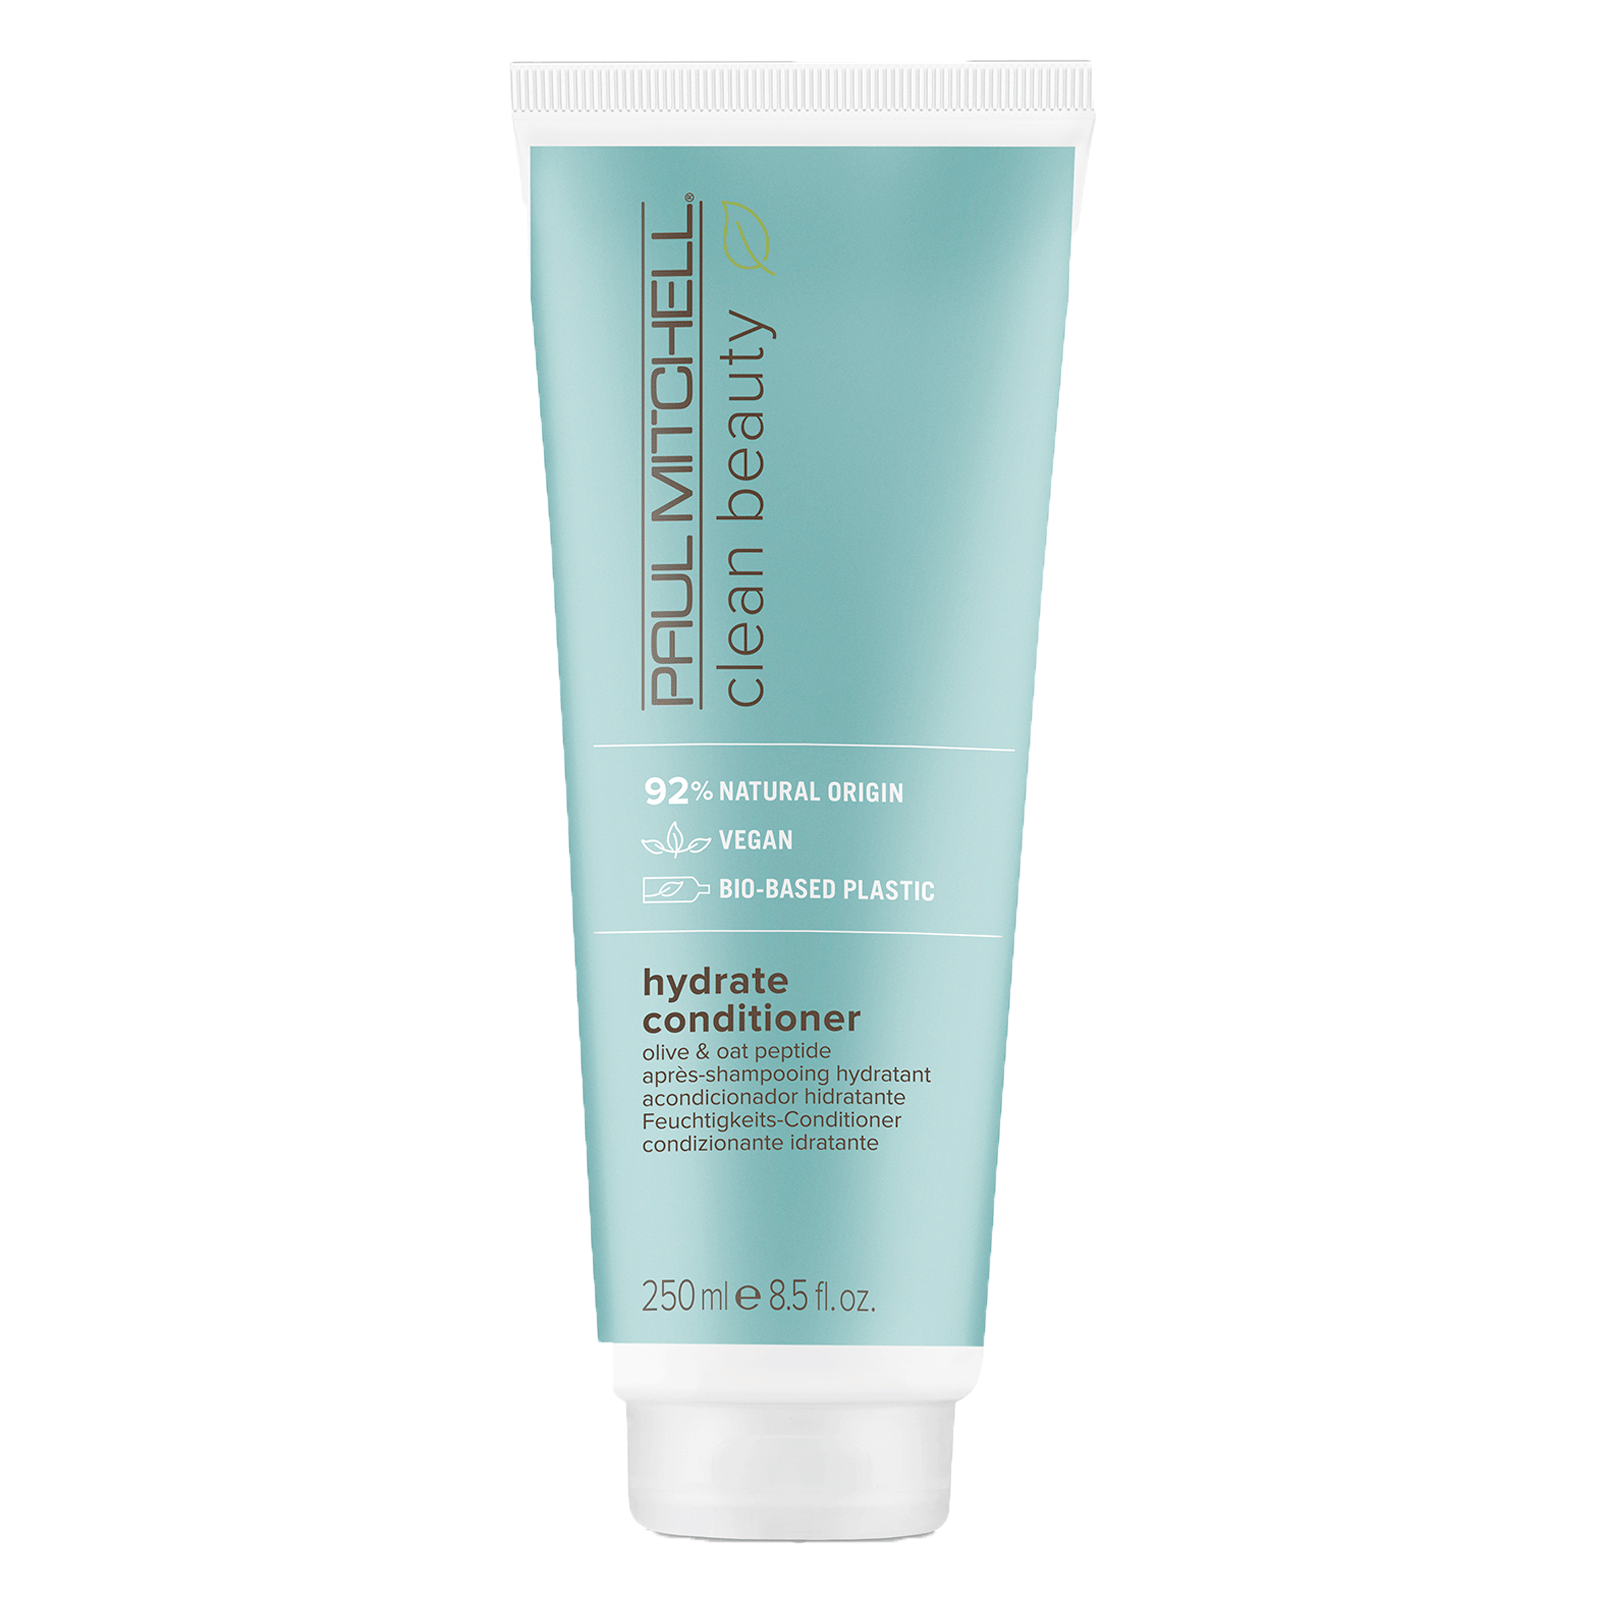 Clean Beauty Hydrate Conditioner